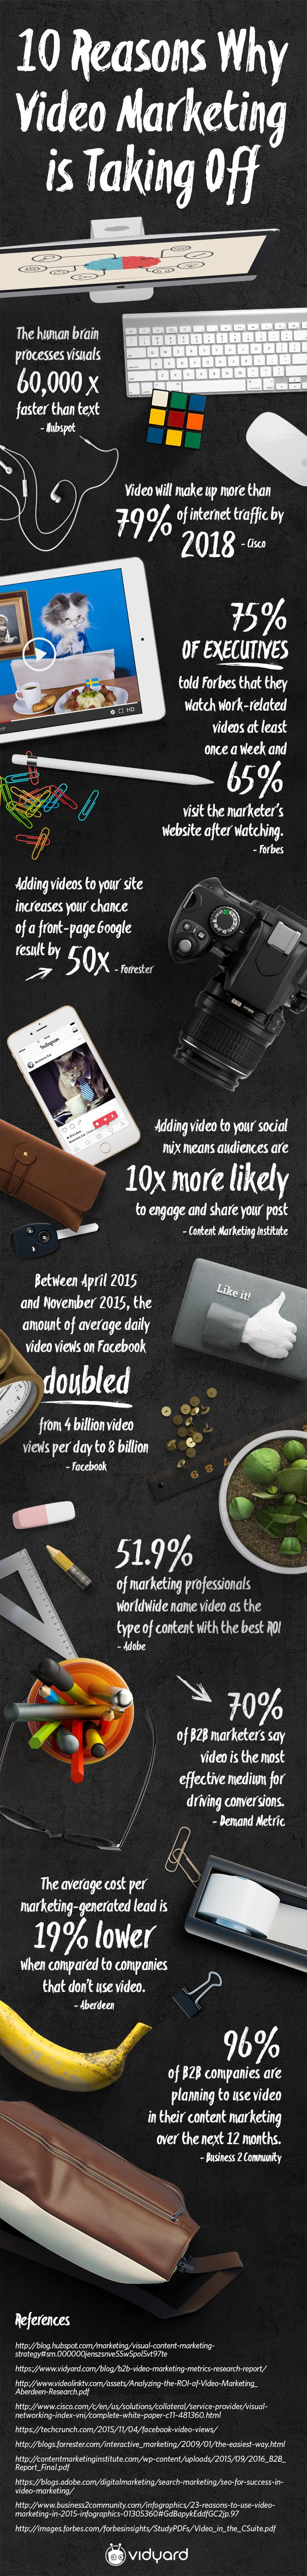 10 Reasons Why Video Marketing is Taking Off [Infographic] | Social Media Today